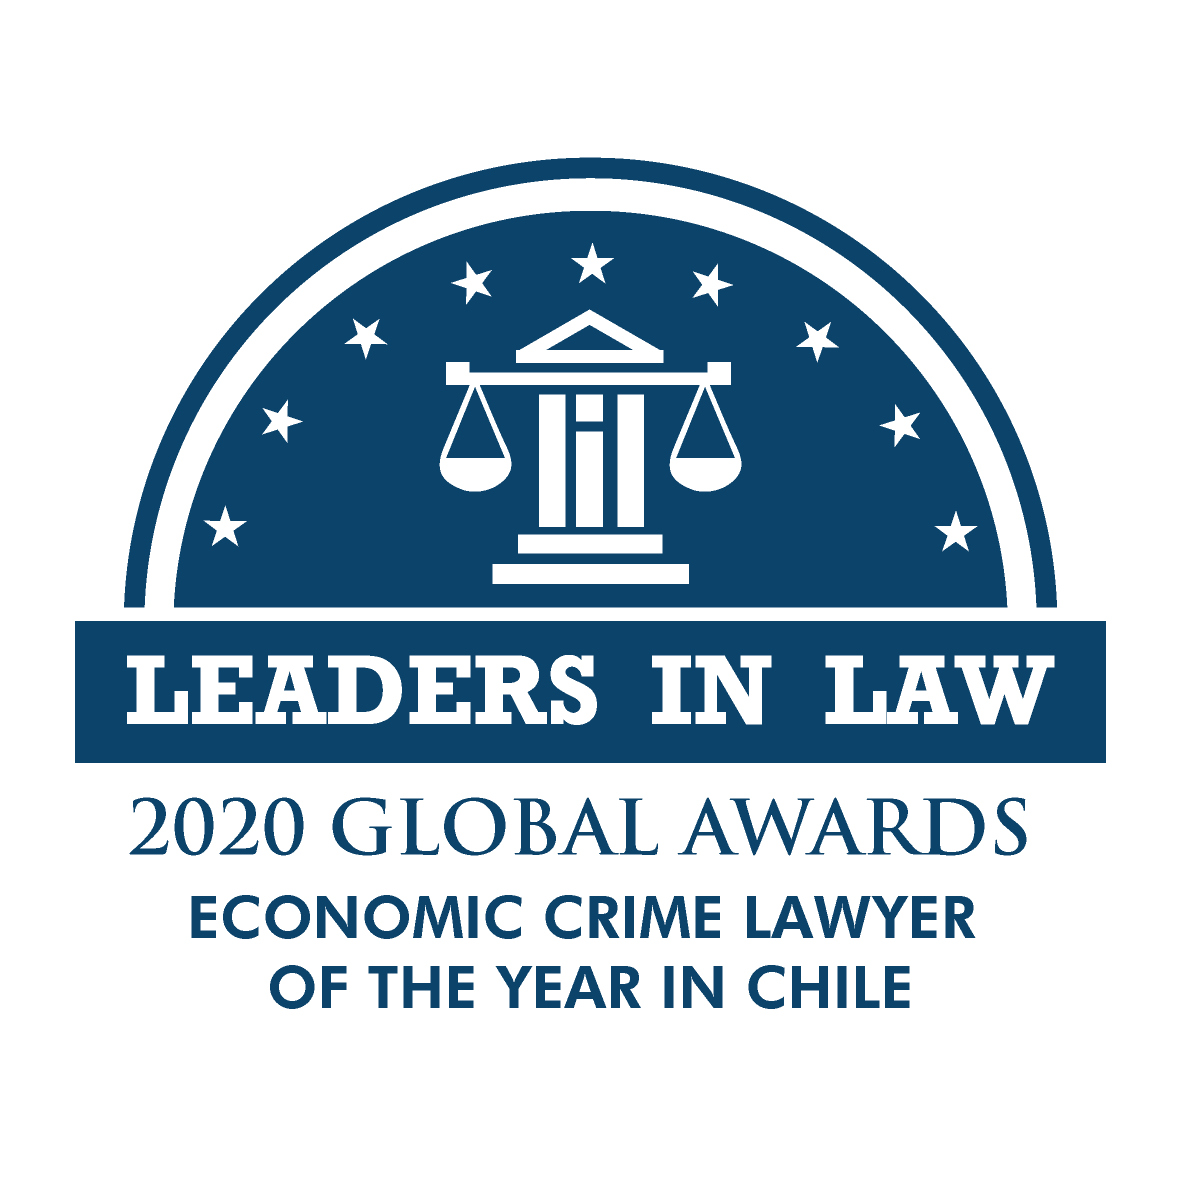 BLUE-ECONOMIC CRIME LAWYER OF THE YEAR IN CHILE